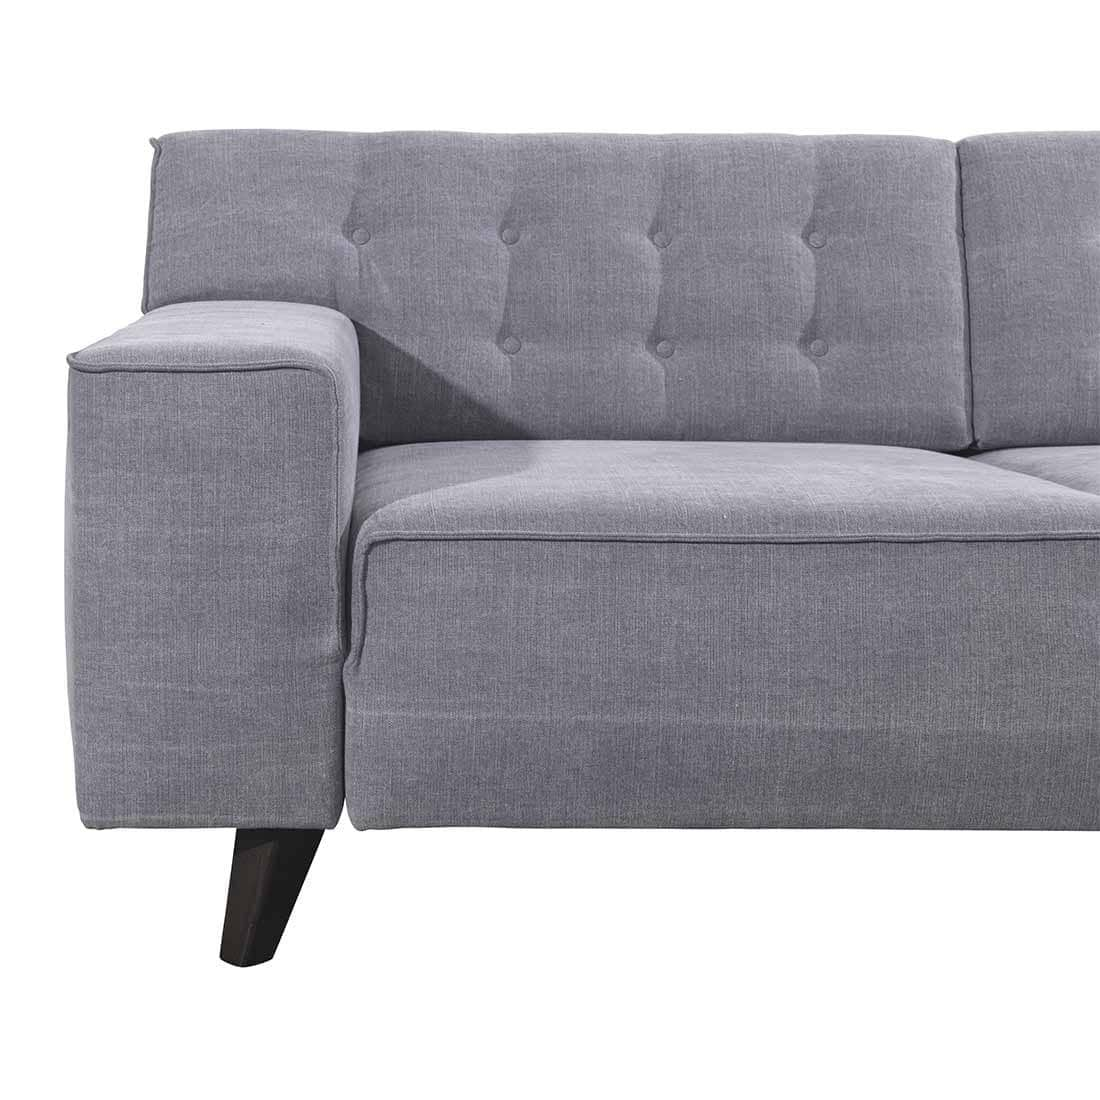 Full Size of Tom Tailor Sofa Heaven Chic Otto Style Elements S Nordic Big Xl Couch Colors Pure West Coast Casual Cube Ecksofa Piolode Kinderzimmer Cognac Led Esszimmer Sofa Sofa Tom Tailor